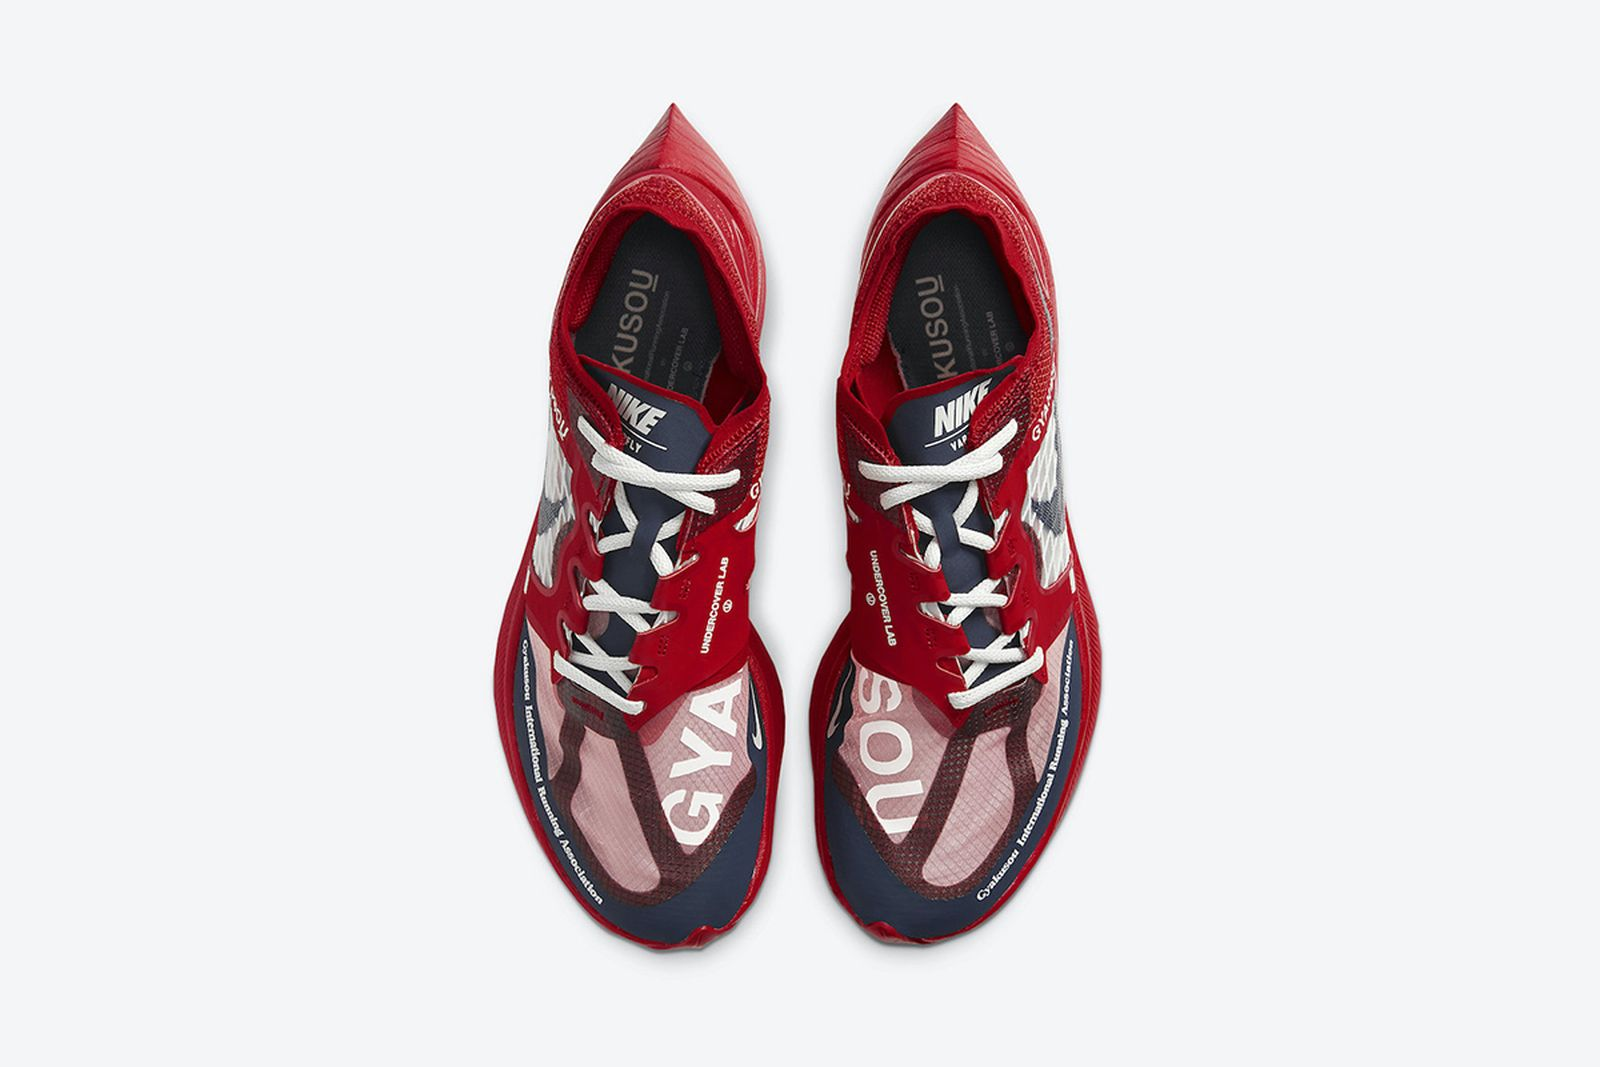 undercover-nike-zoomx-vaporfly-next-2-release-date-price-04